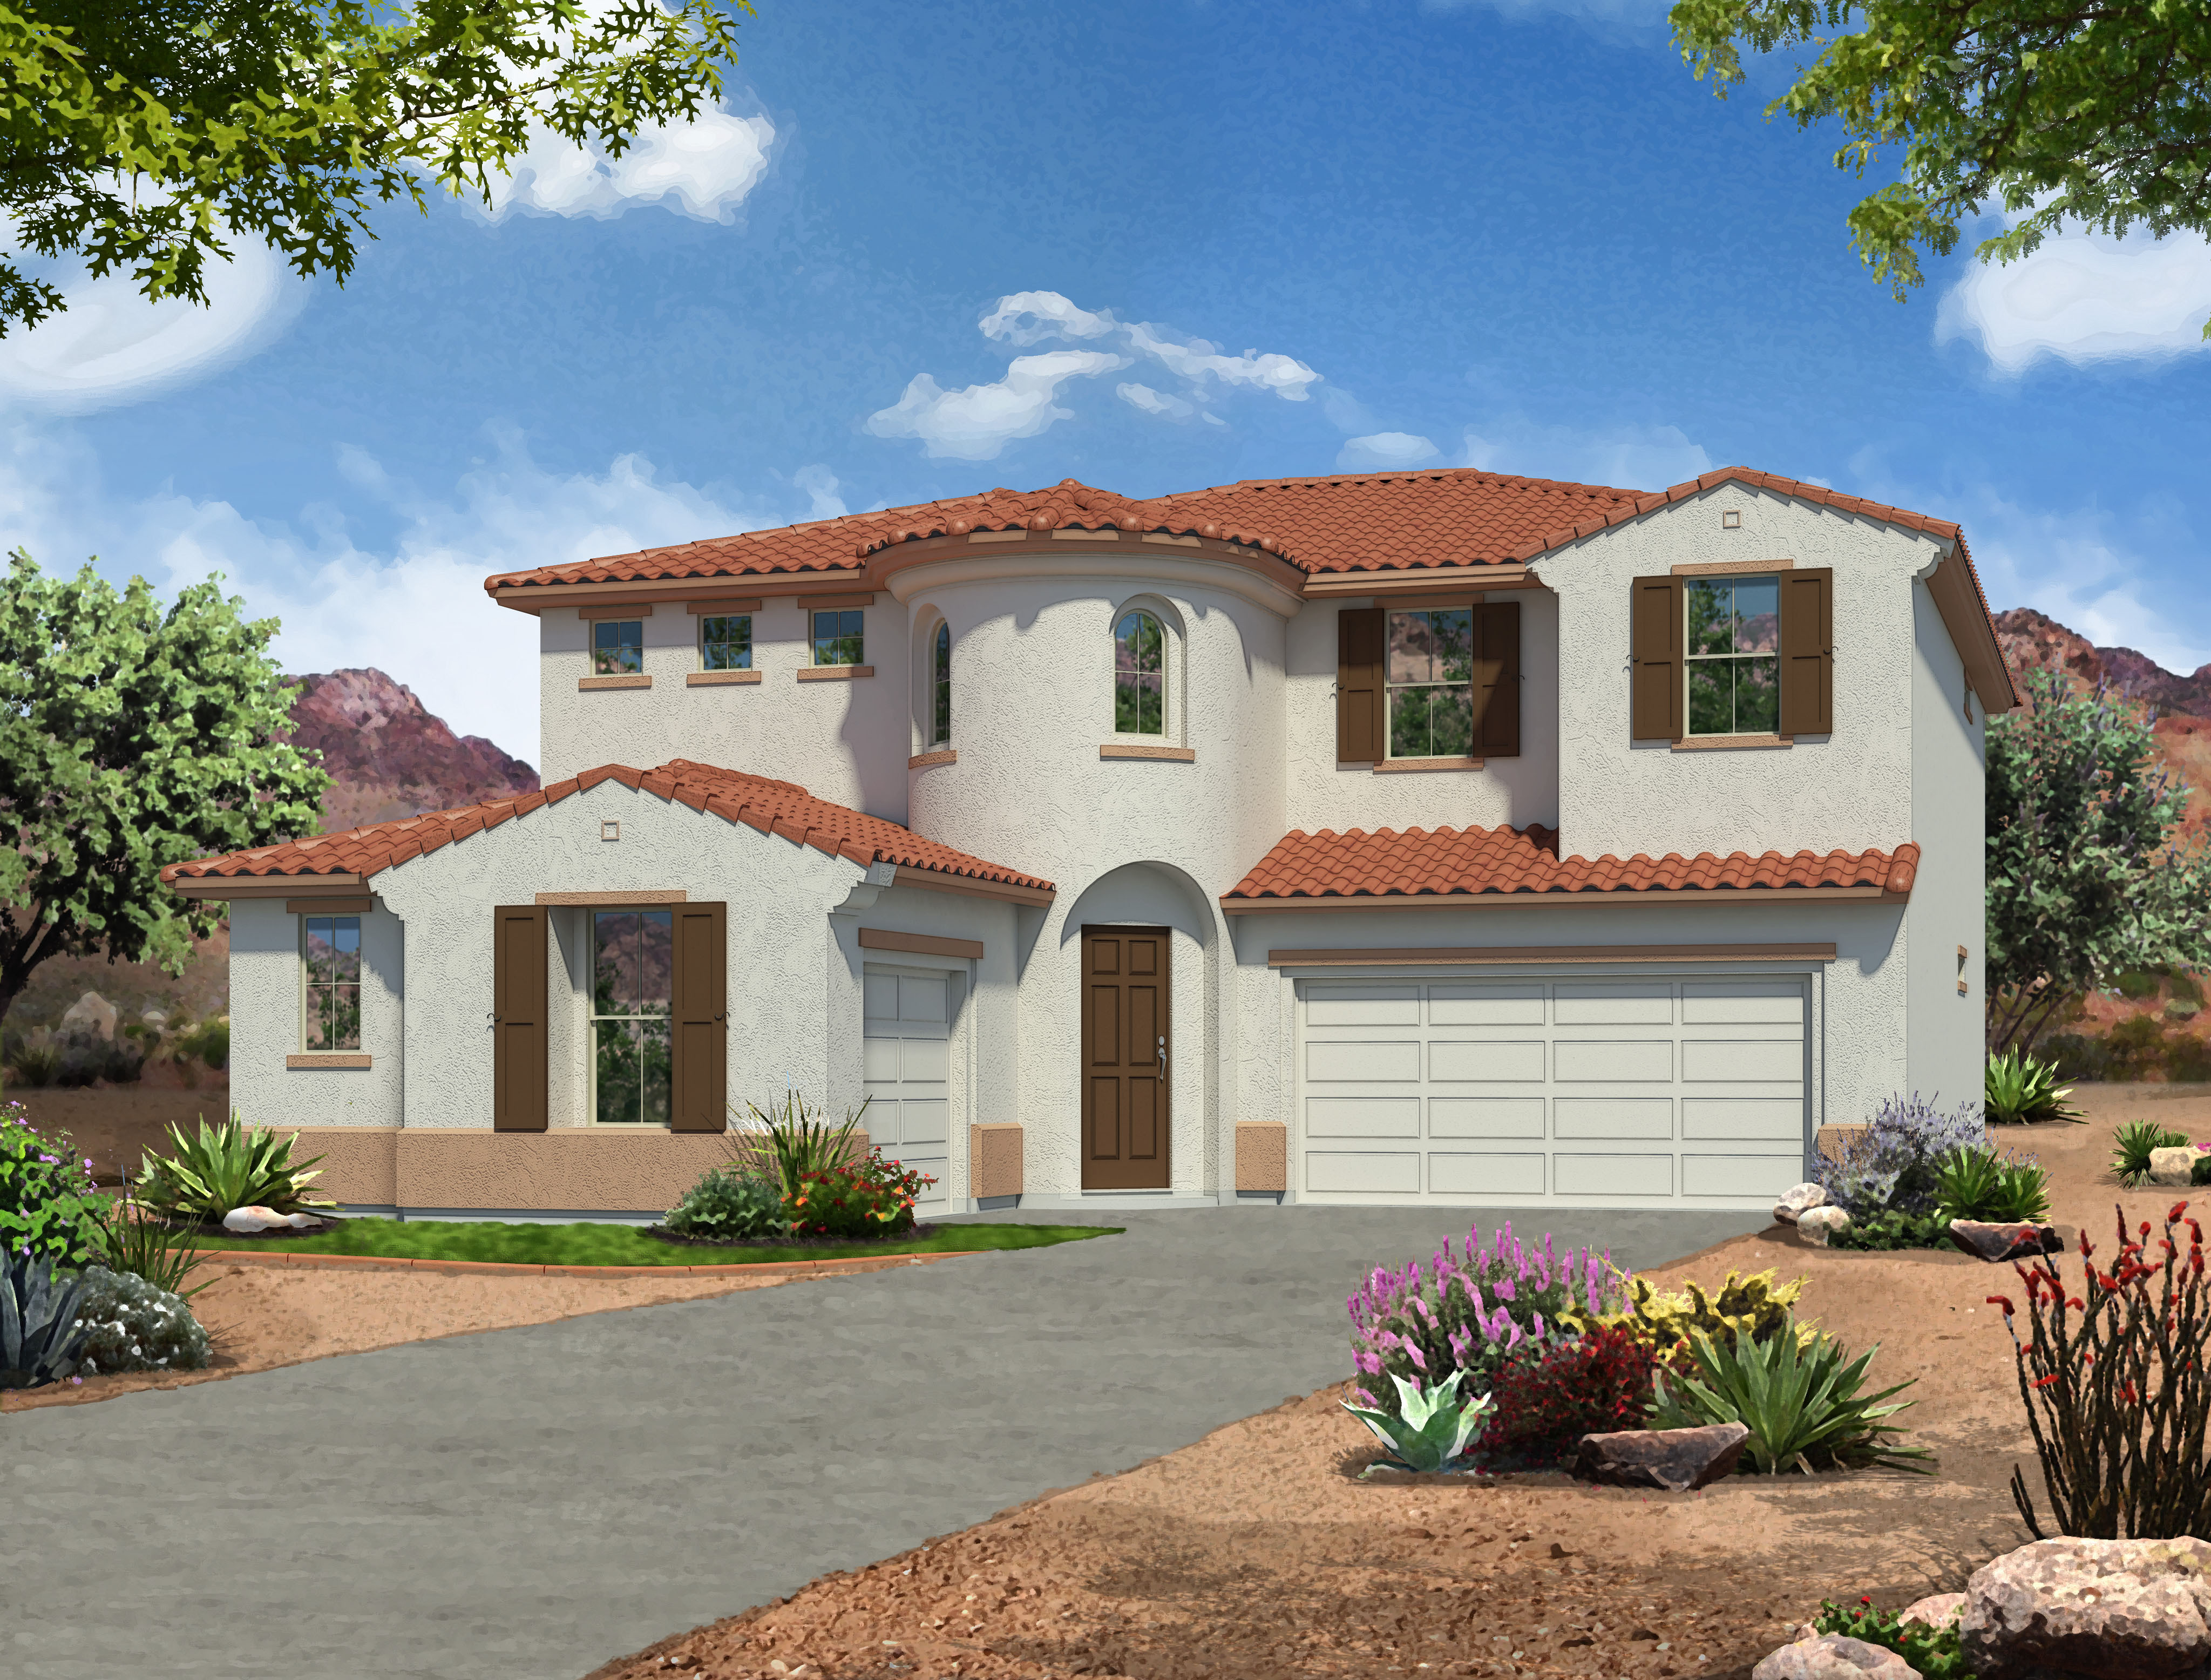 Texas Homebuilder Gehan Homes Continues Expansion Into Arizona | Business  Wire